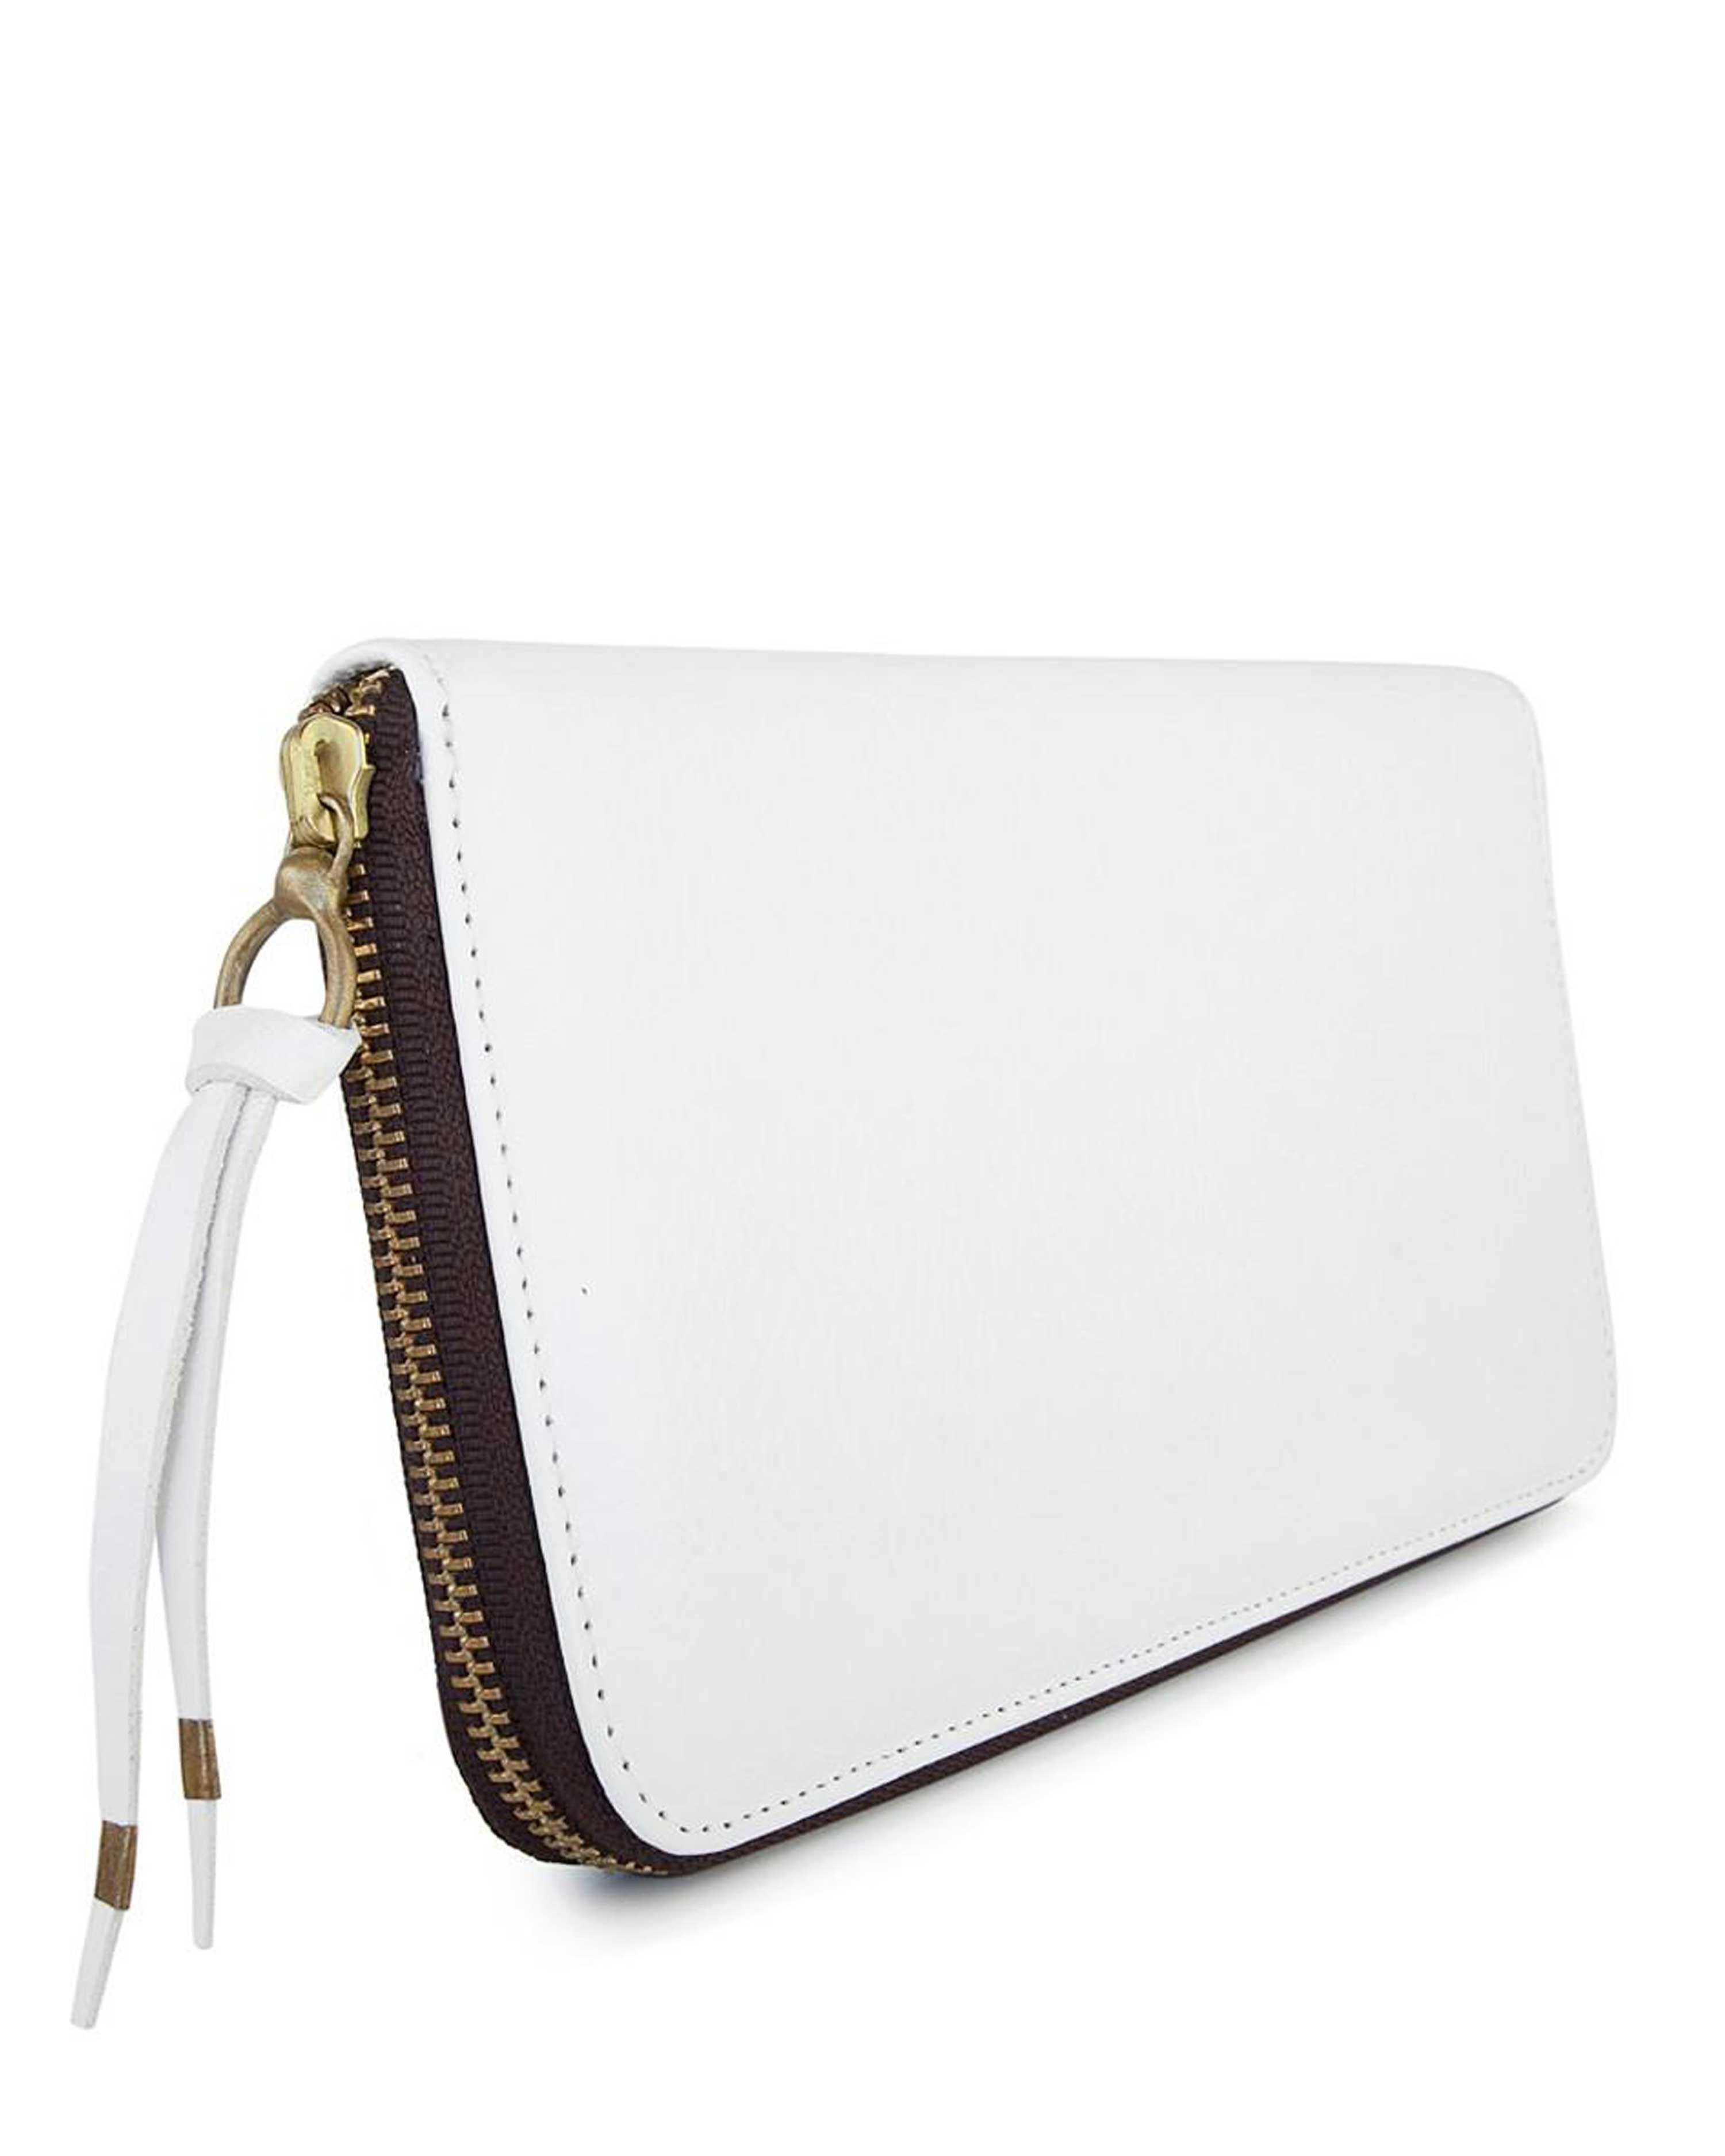 PASAPORTE in White Napa Leather